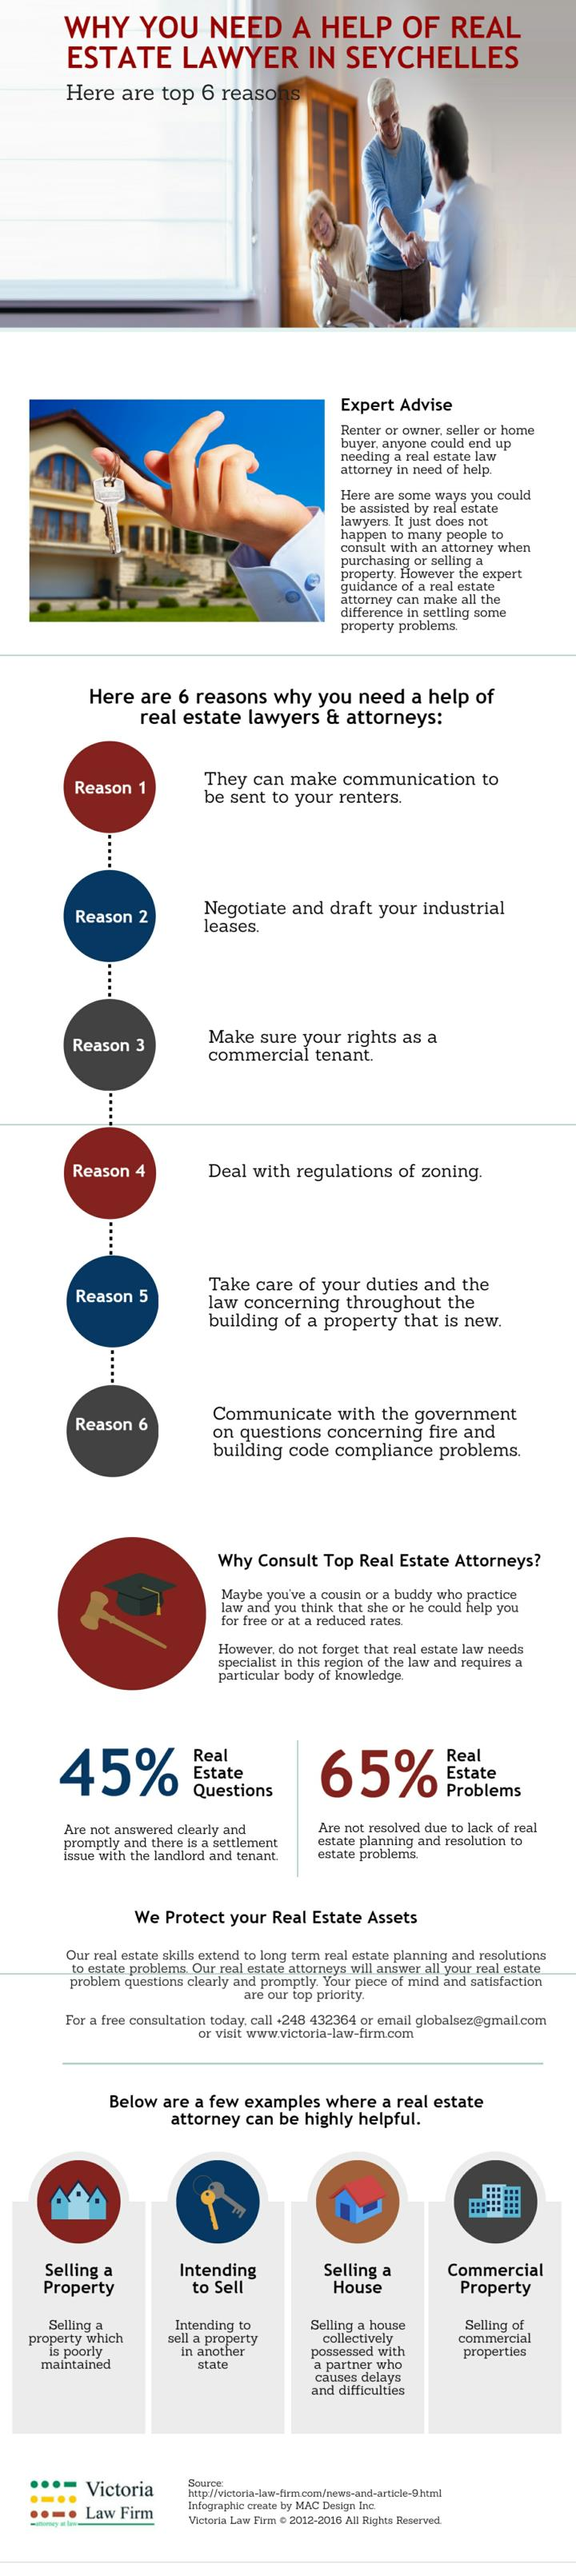 Why you need a help of real estate lawyer in seychelles